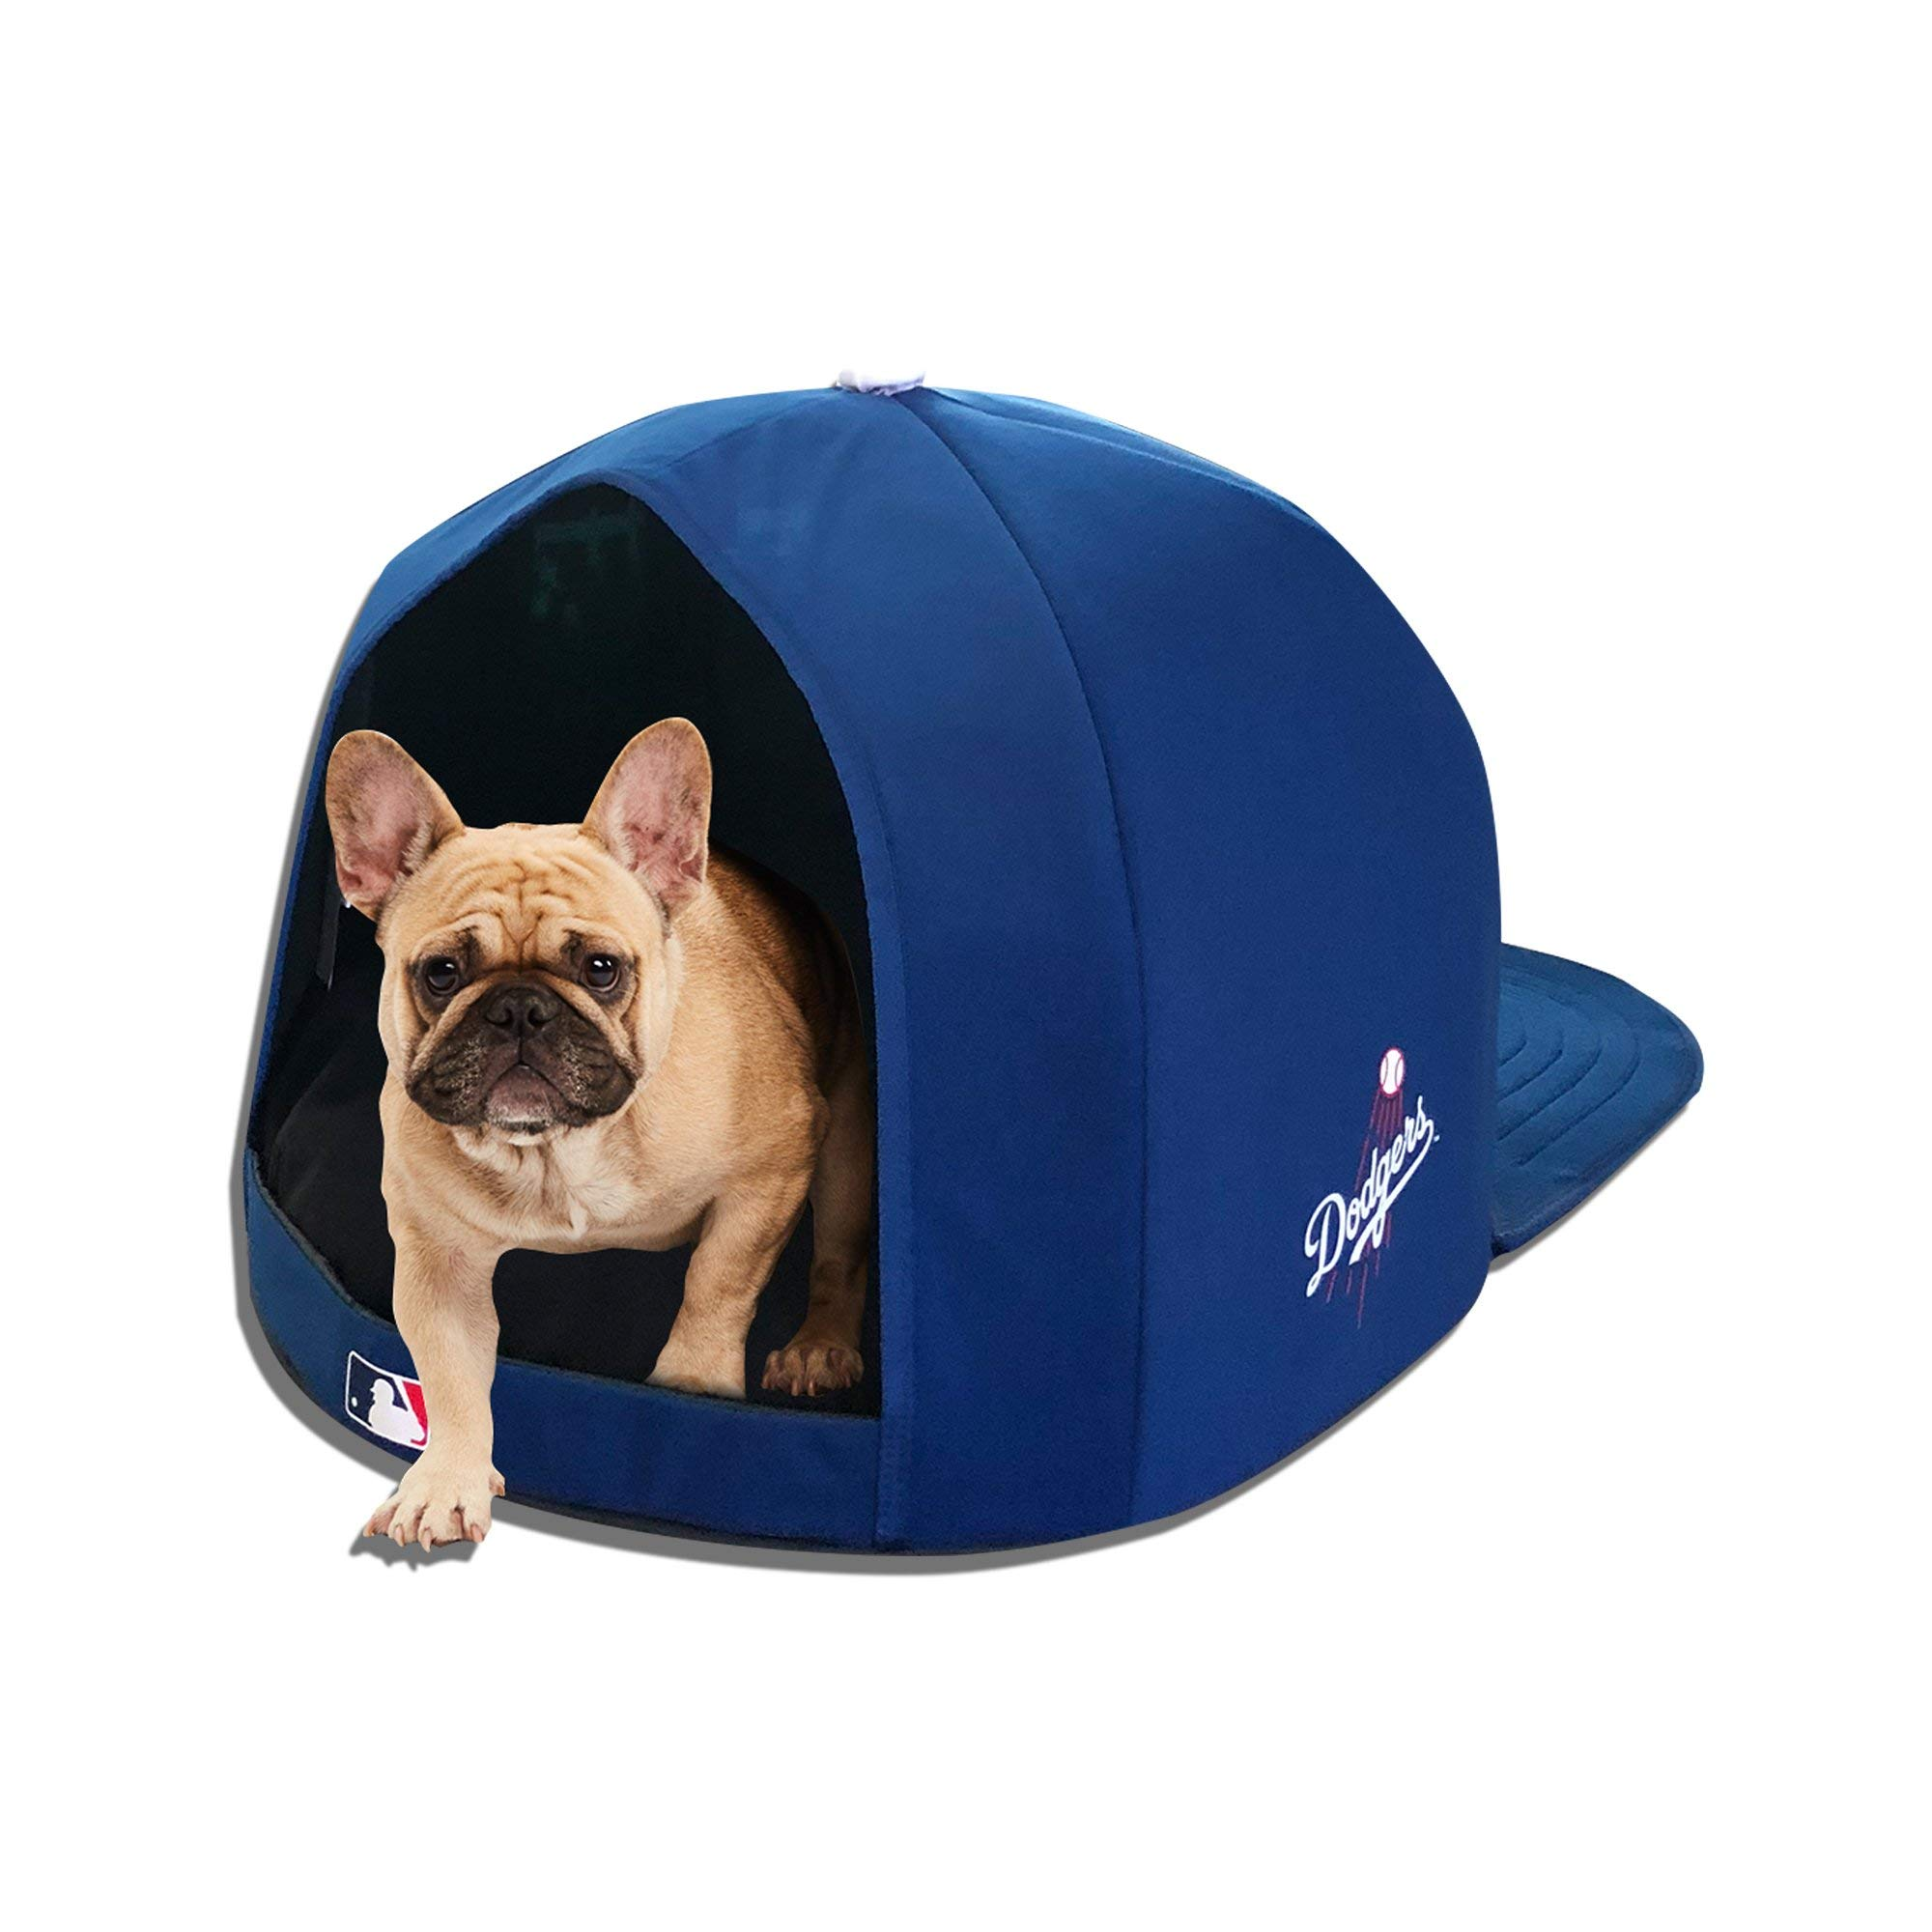 NAP CAP Plush Edition - Los Angeles Dodgers by NAP CAP